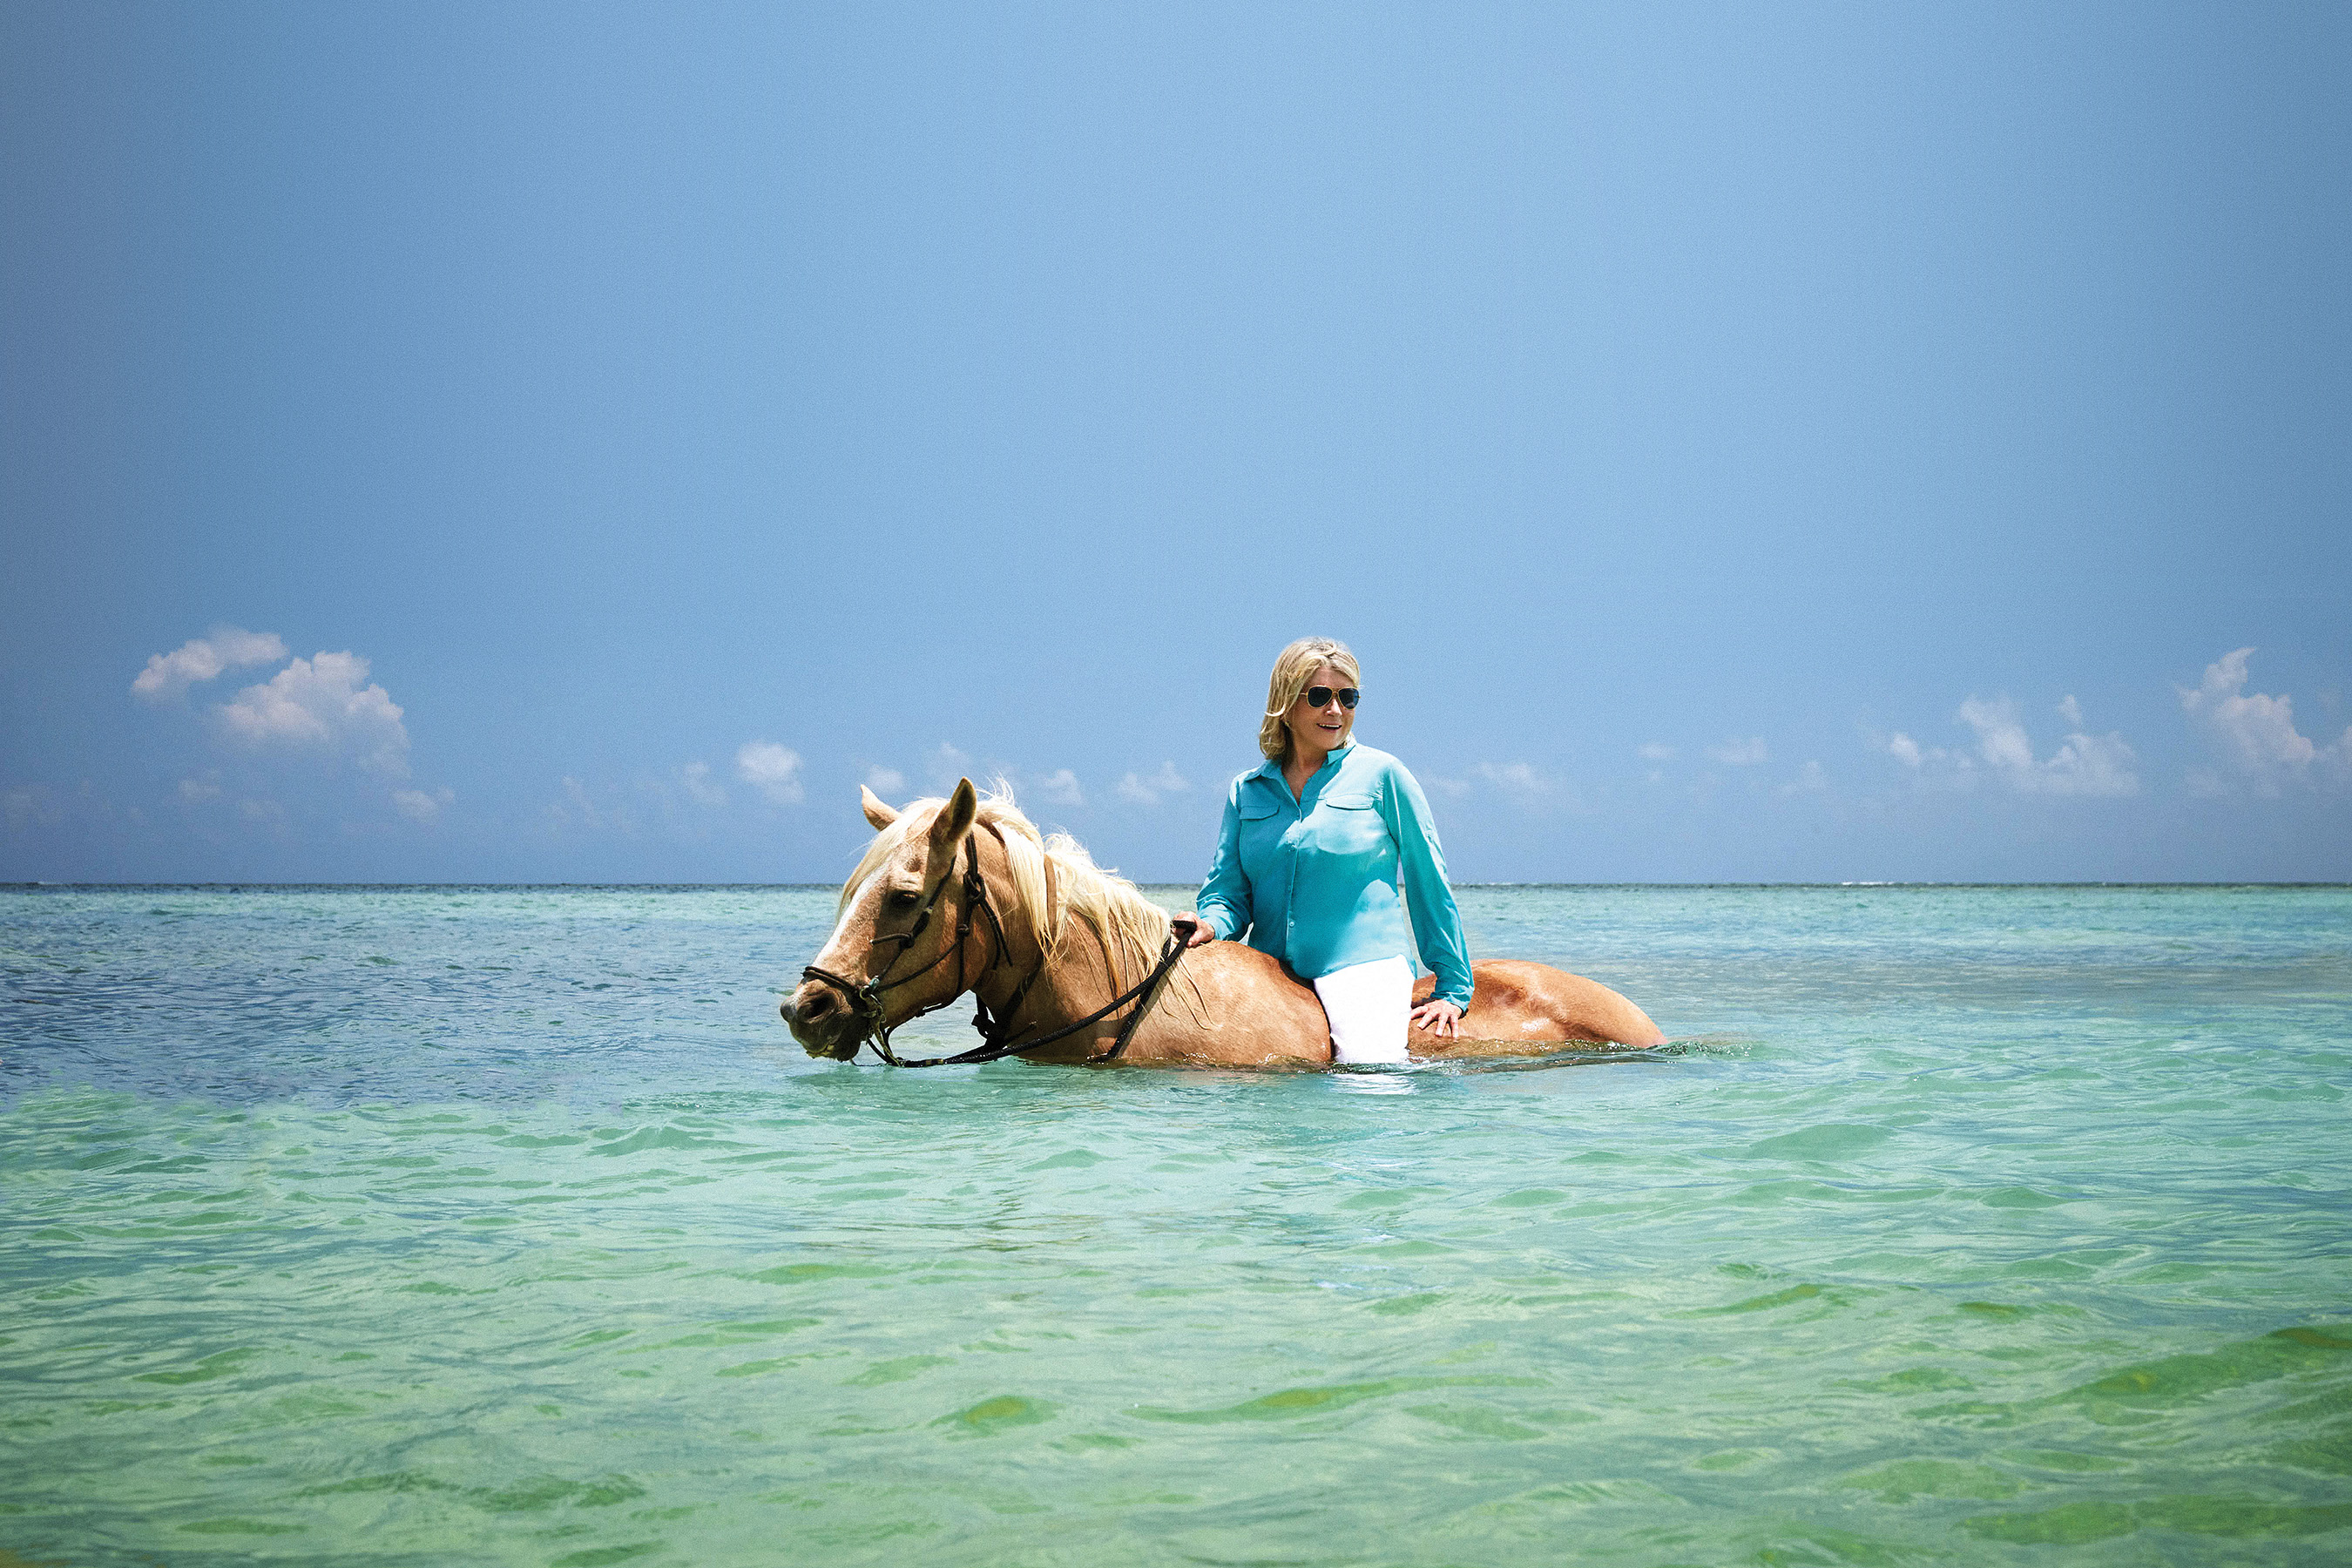 Martha Stewart & MSC Cruises curated shore excursion in Grand Cayman includes a refreshing horseback ride through the crystal blue Caribbean Sea. (Credit: Douglas Friedman)